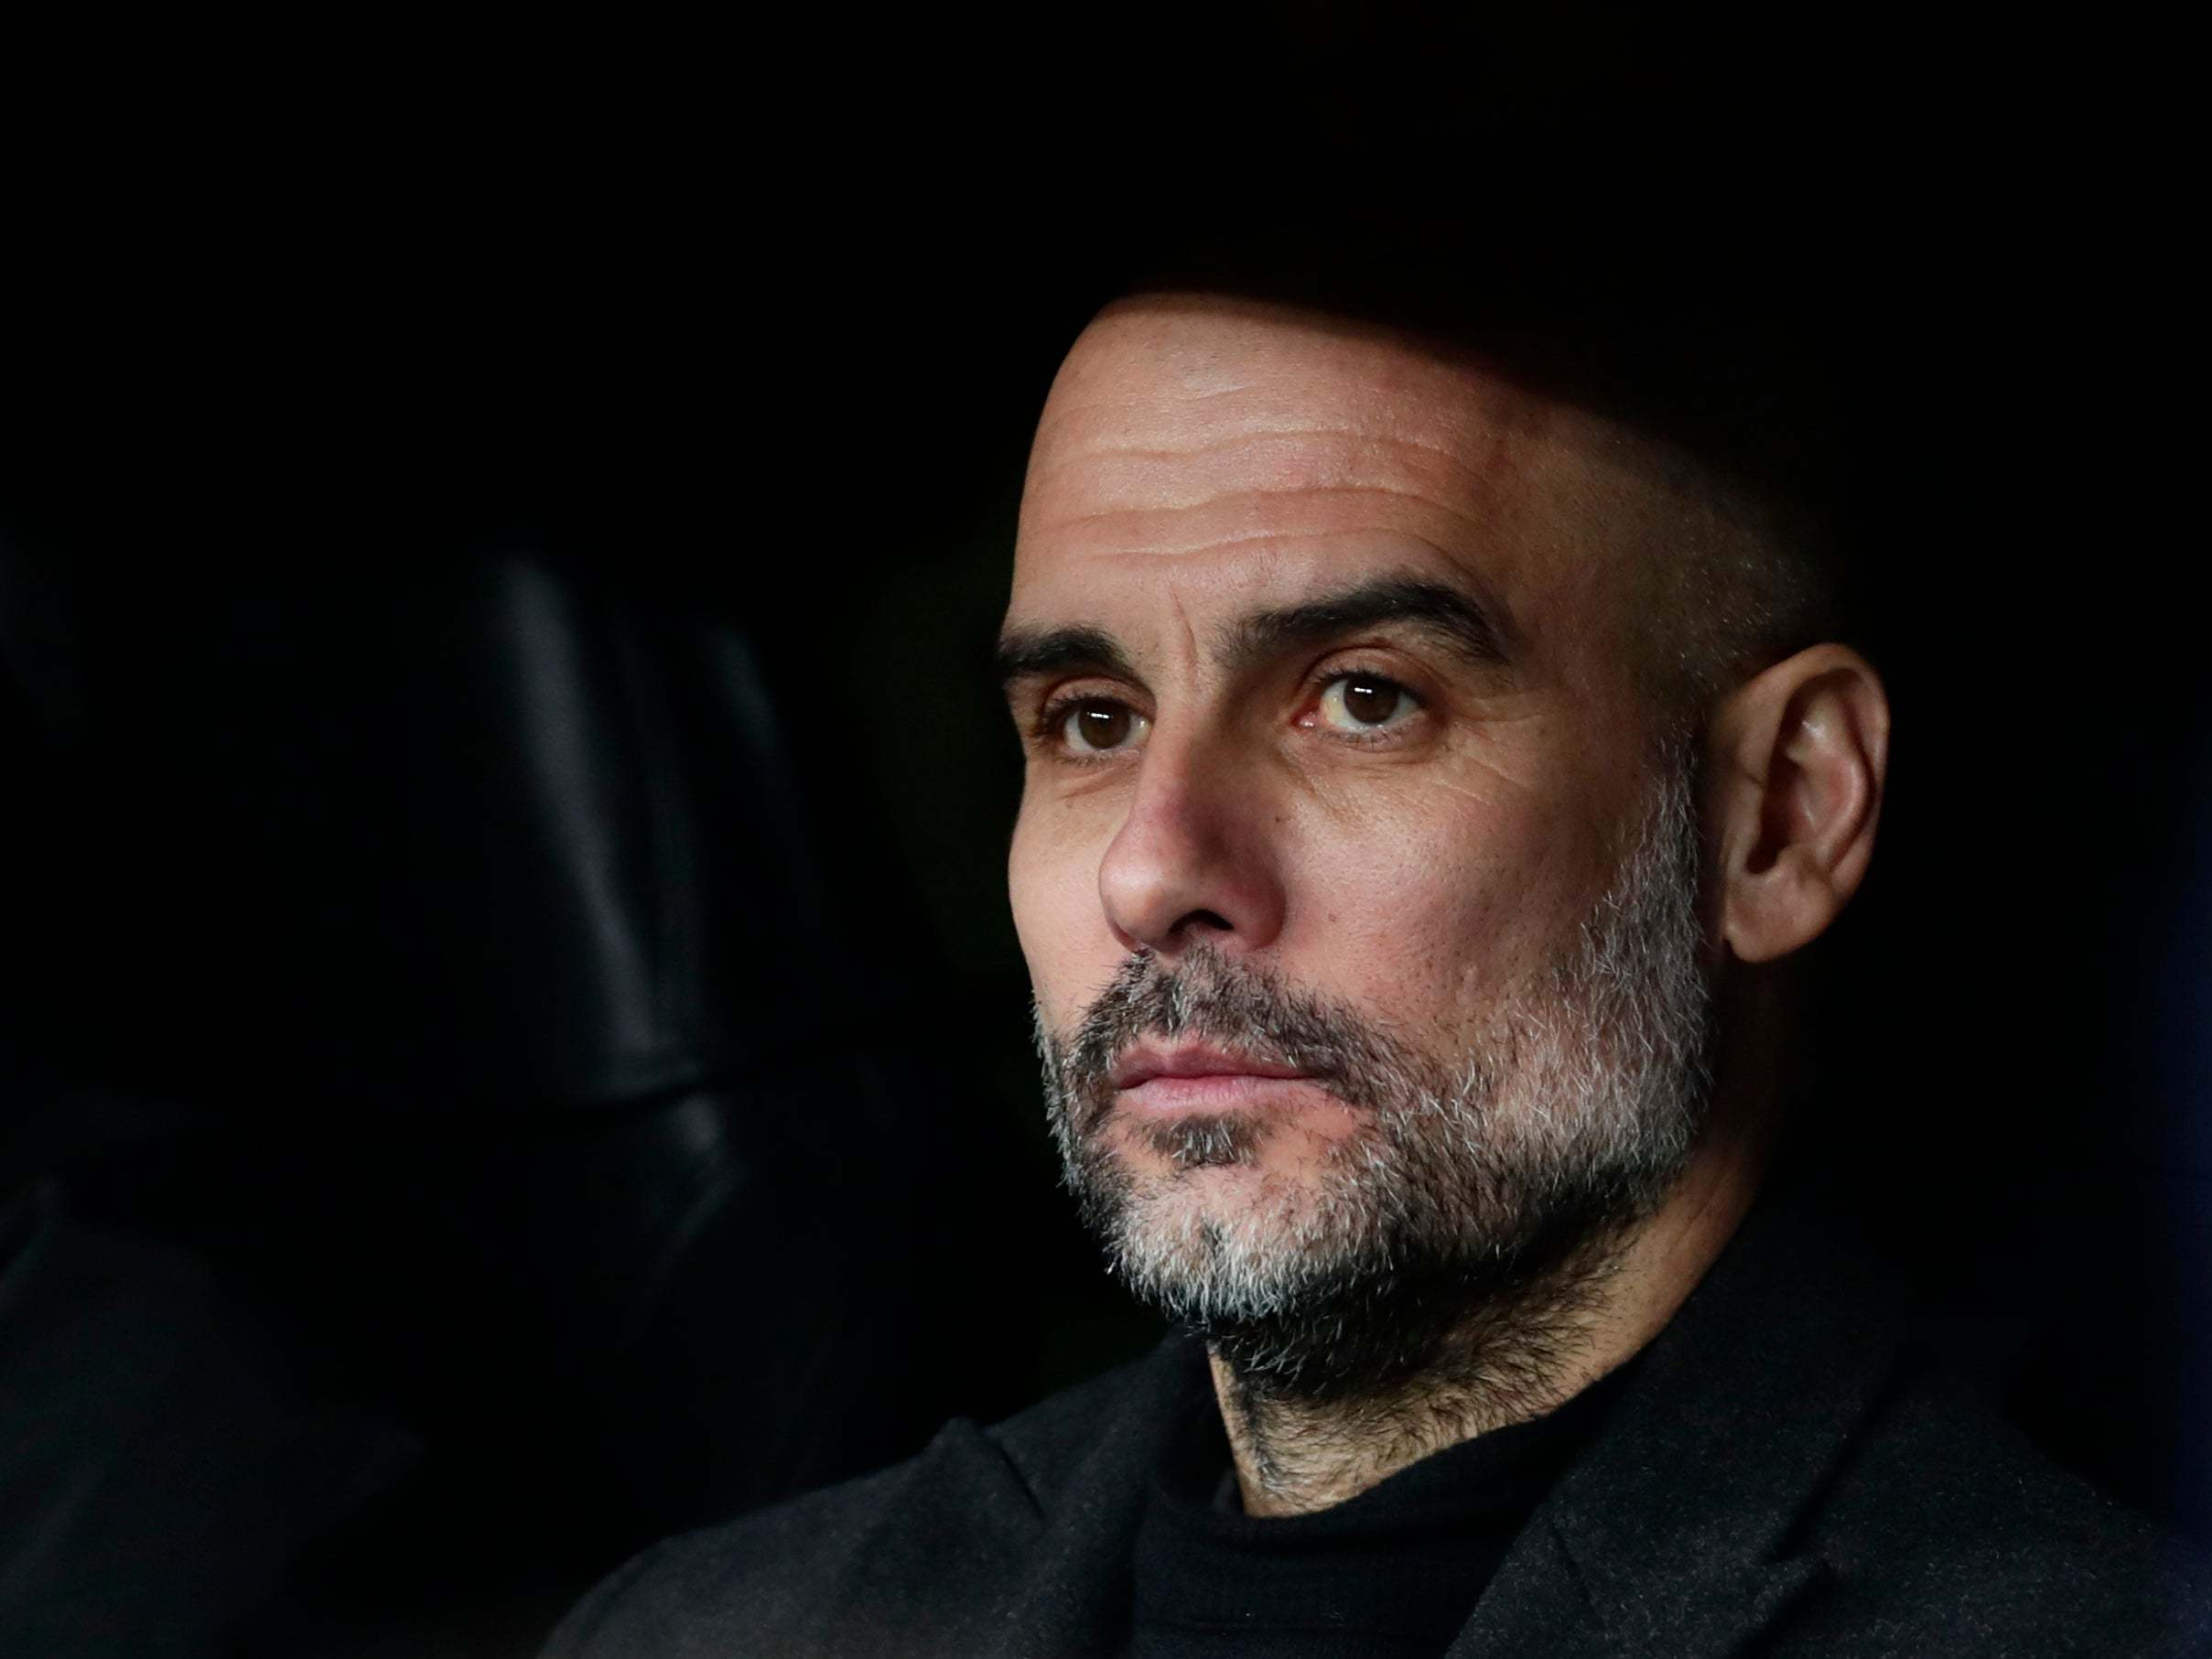 Pep Guardiola's emails 'hacked' as man arrested in investigation